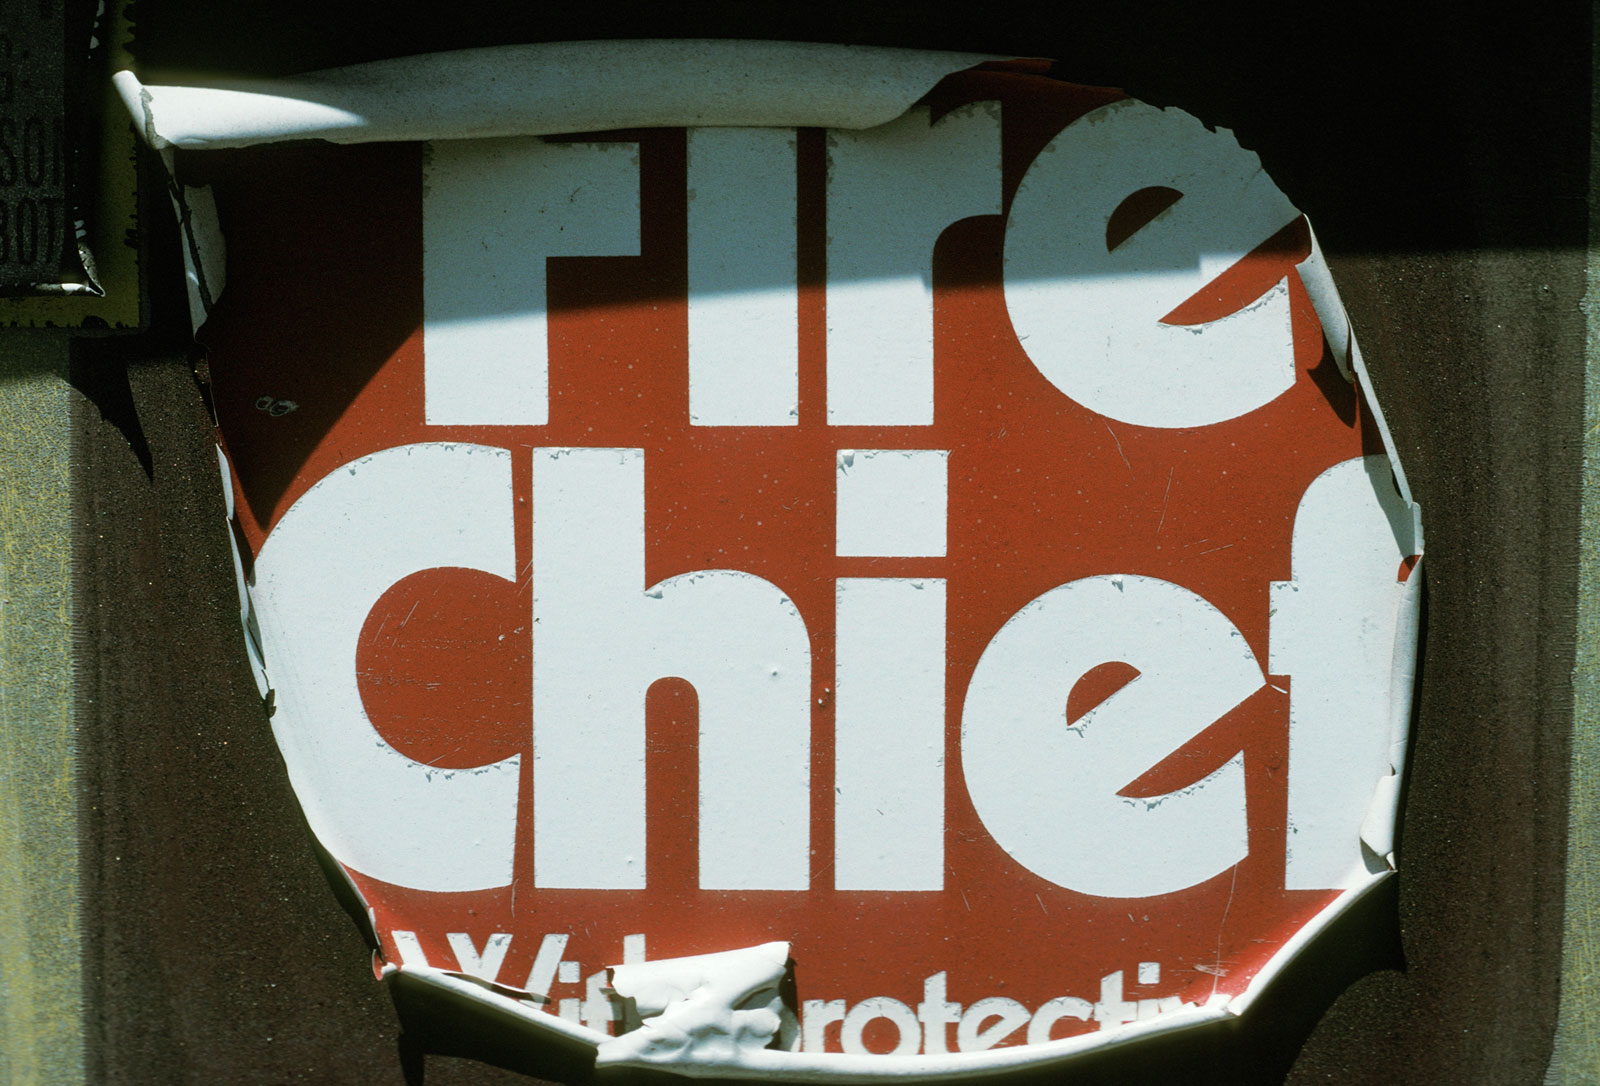 Fire Chief, photo by Joel Mason